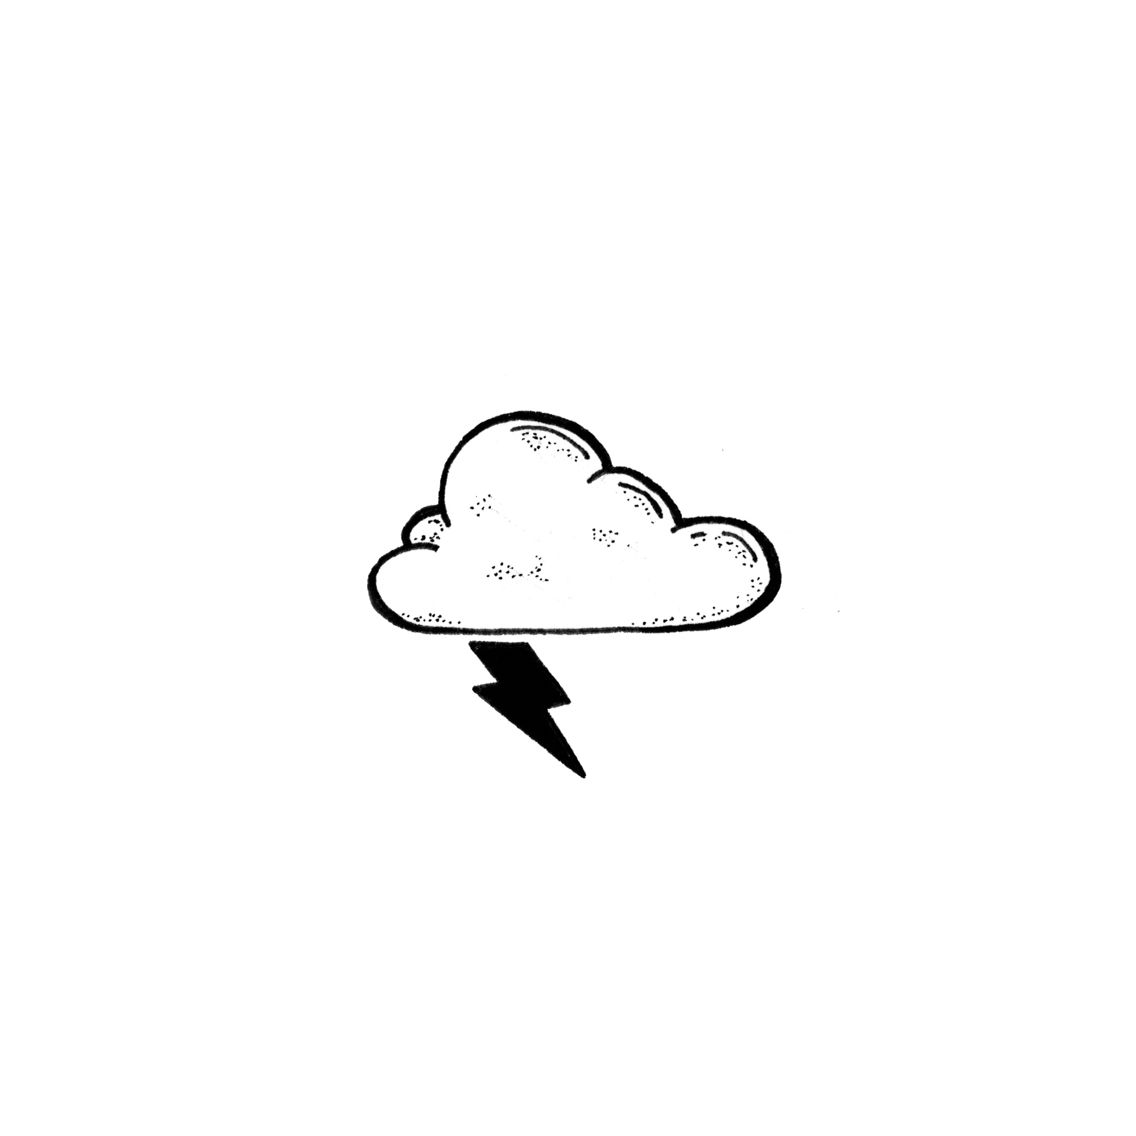 1136x1136 storm cloud a tattoo storm tattoo, cloud tattoo, doodle tattoo